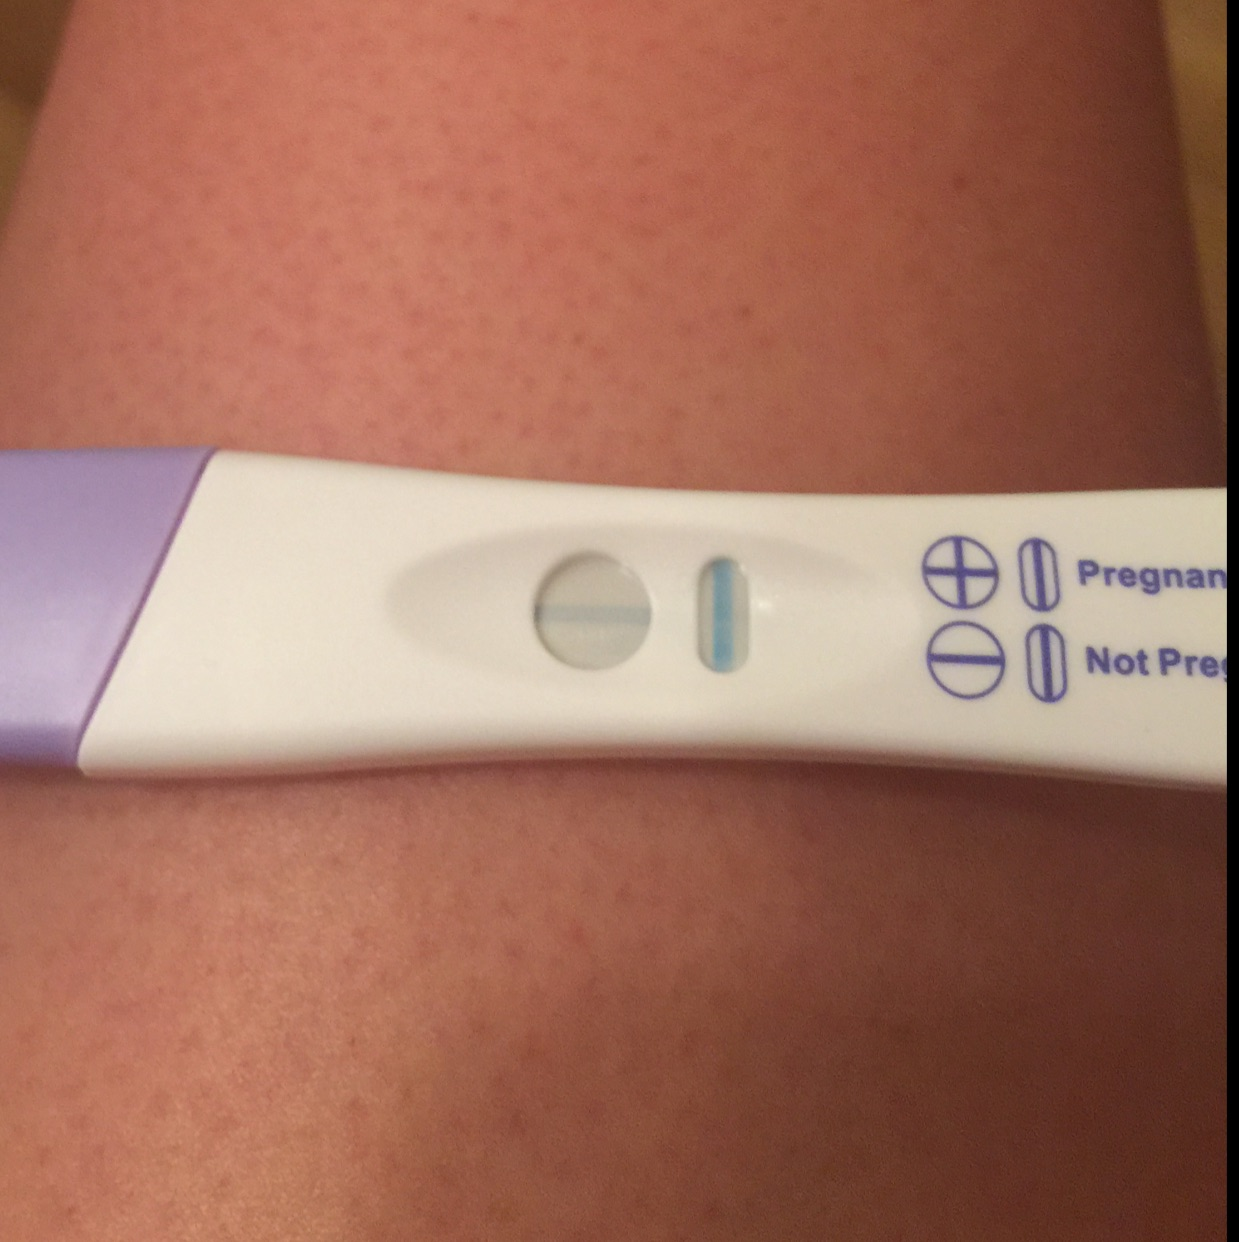 My test at around 9 dpo, my period is due in 6 days   I'm not sure